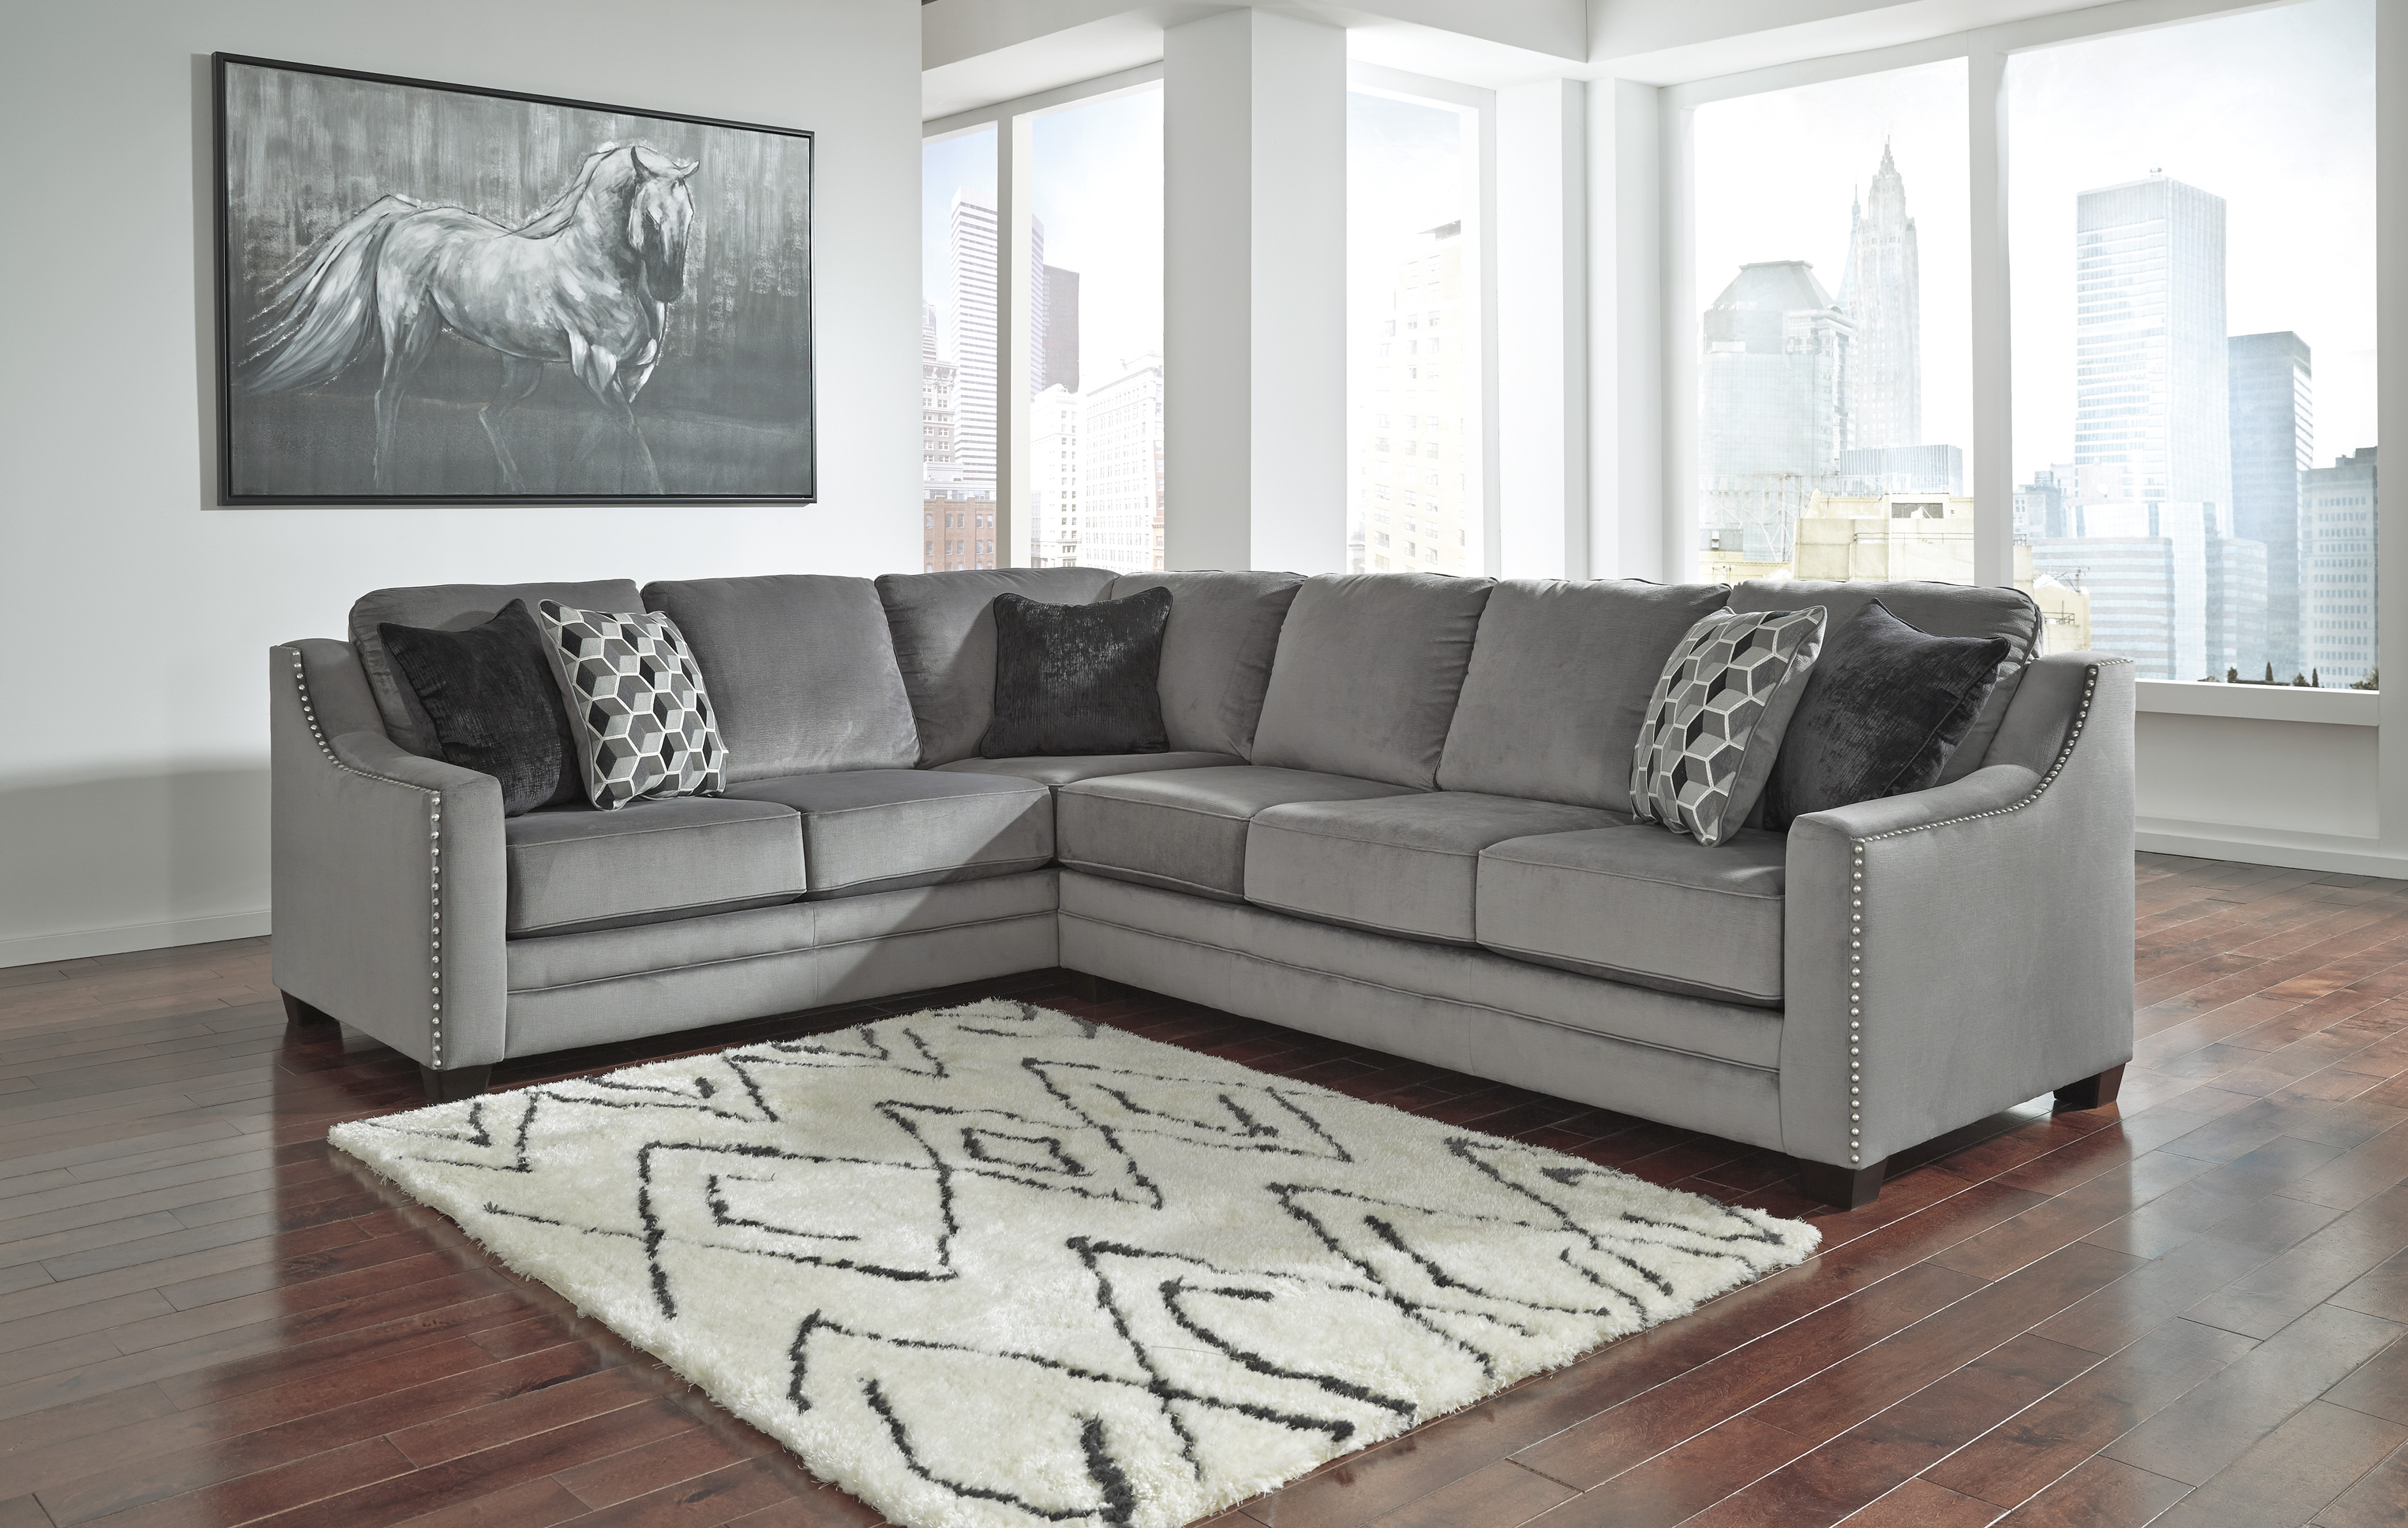 bicknell charcoal ashley sectional sofa - Ashley Furniture Sectional Sofas